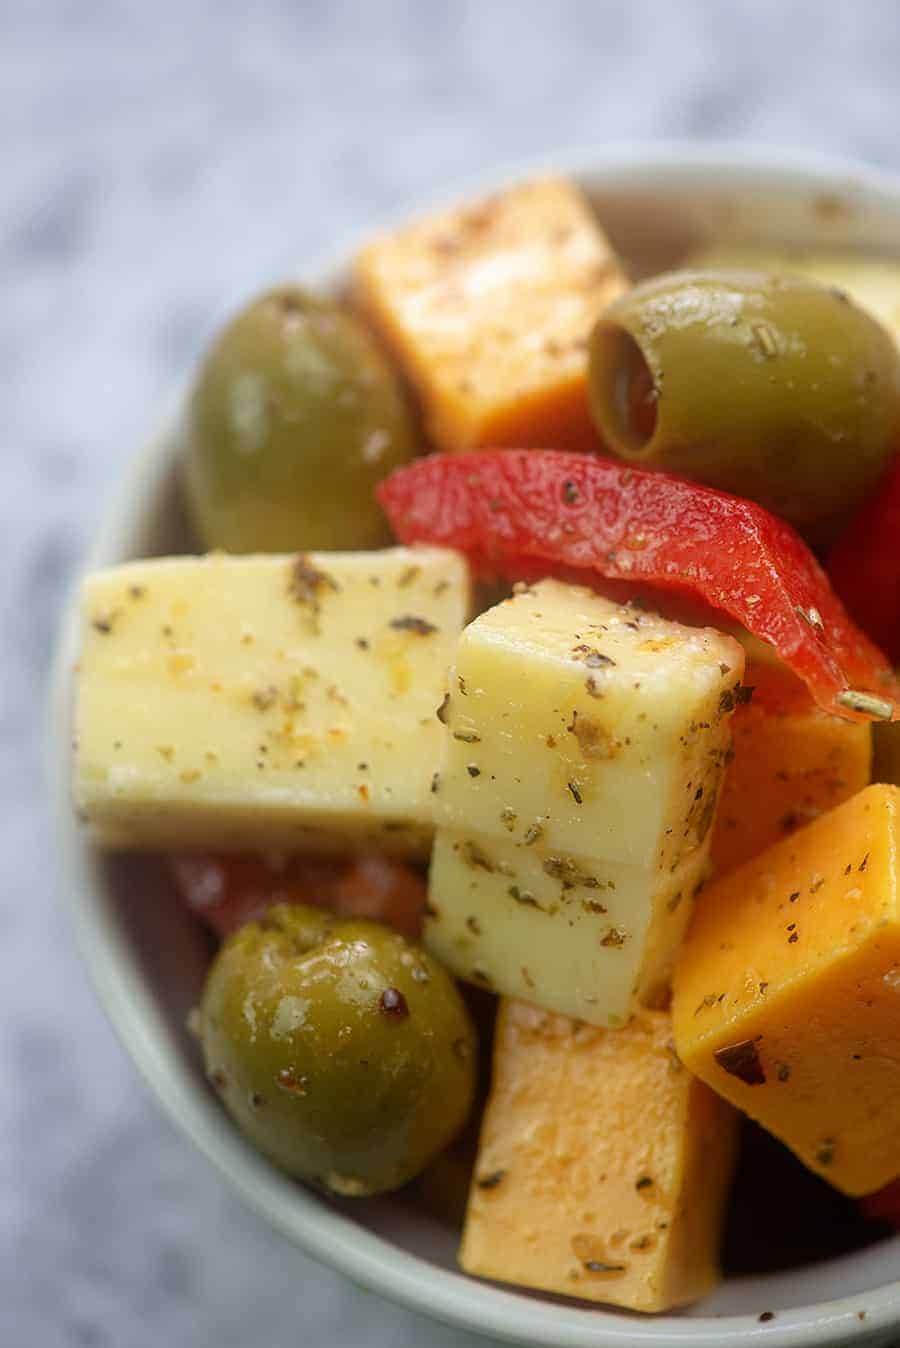 A close up of a bowl of cheese and olives